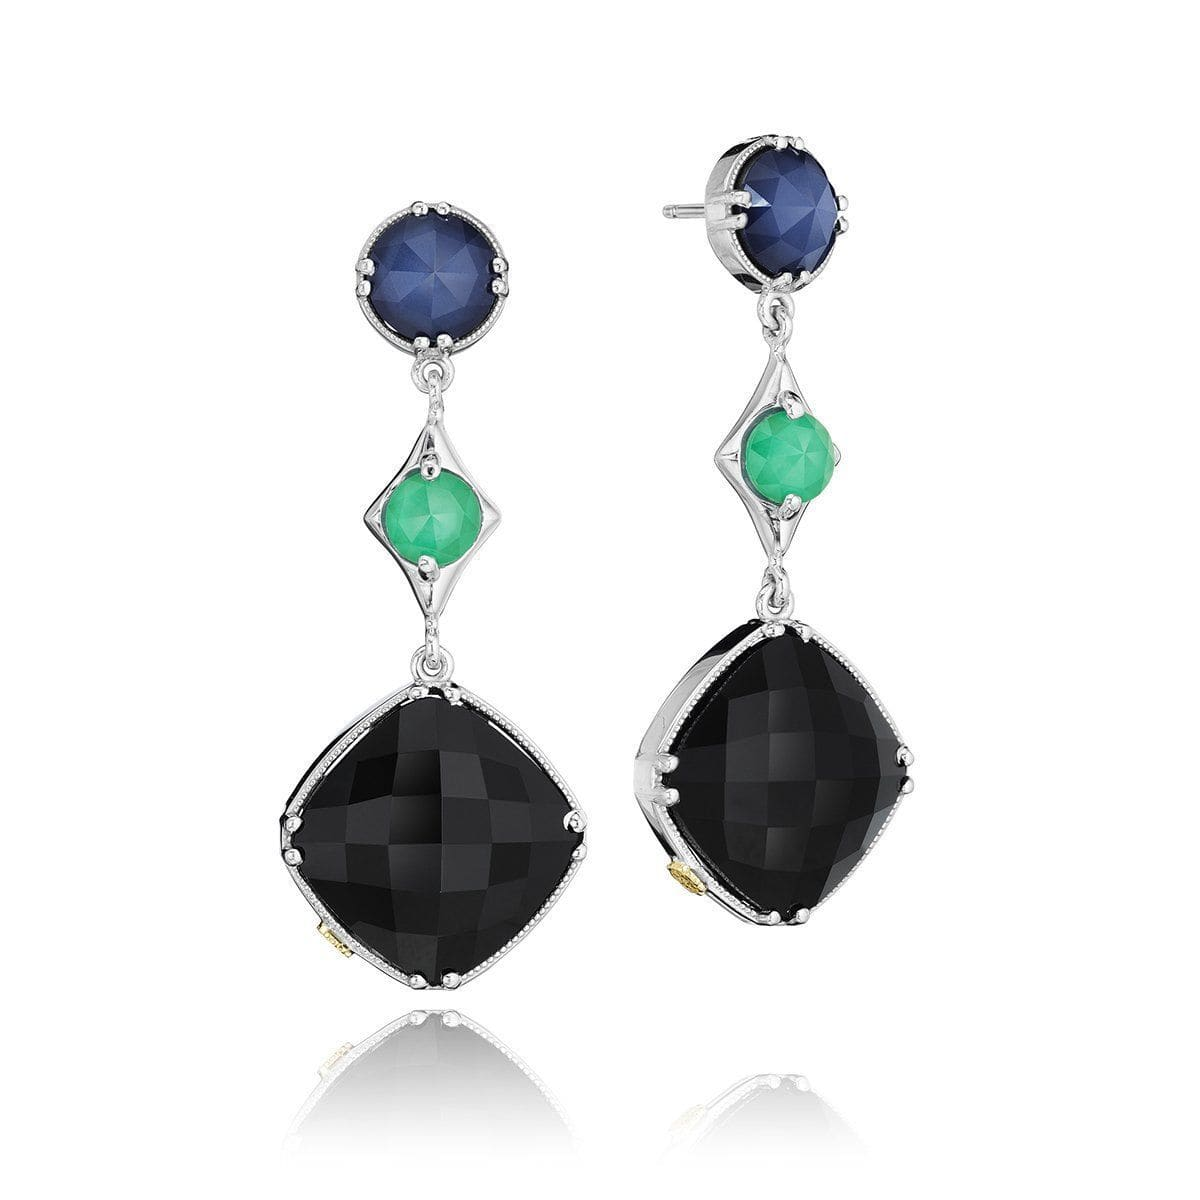 Multicolor Blue Quartz Onyx Earrings - SE169352719